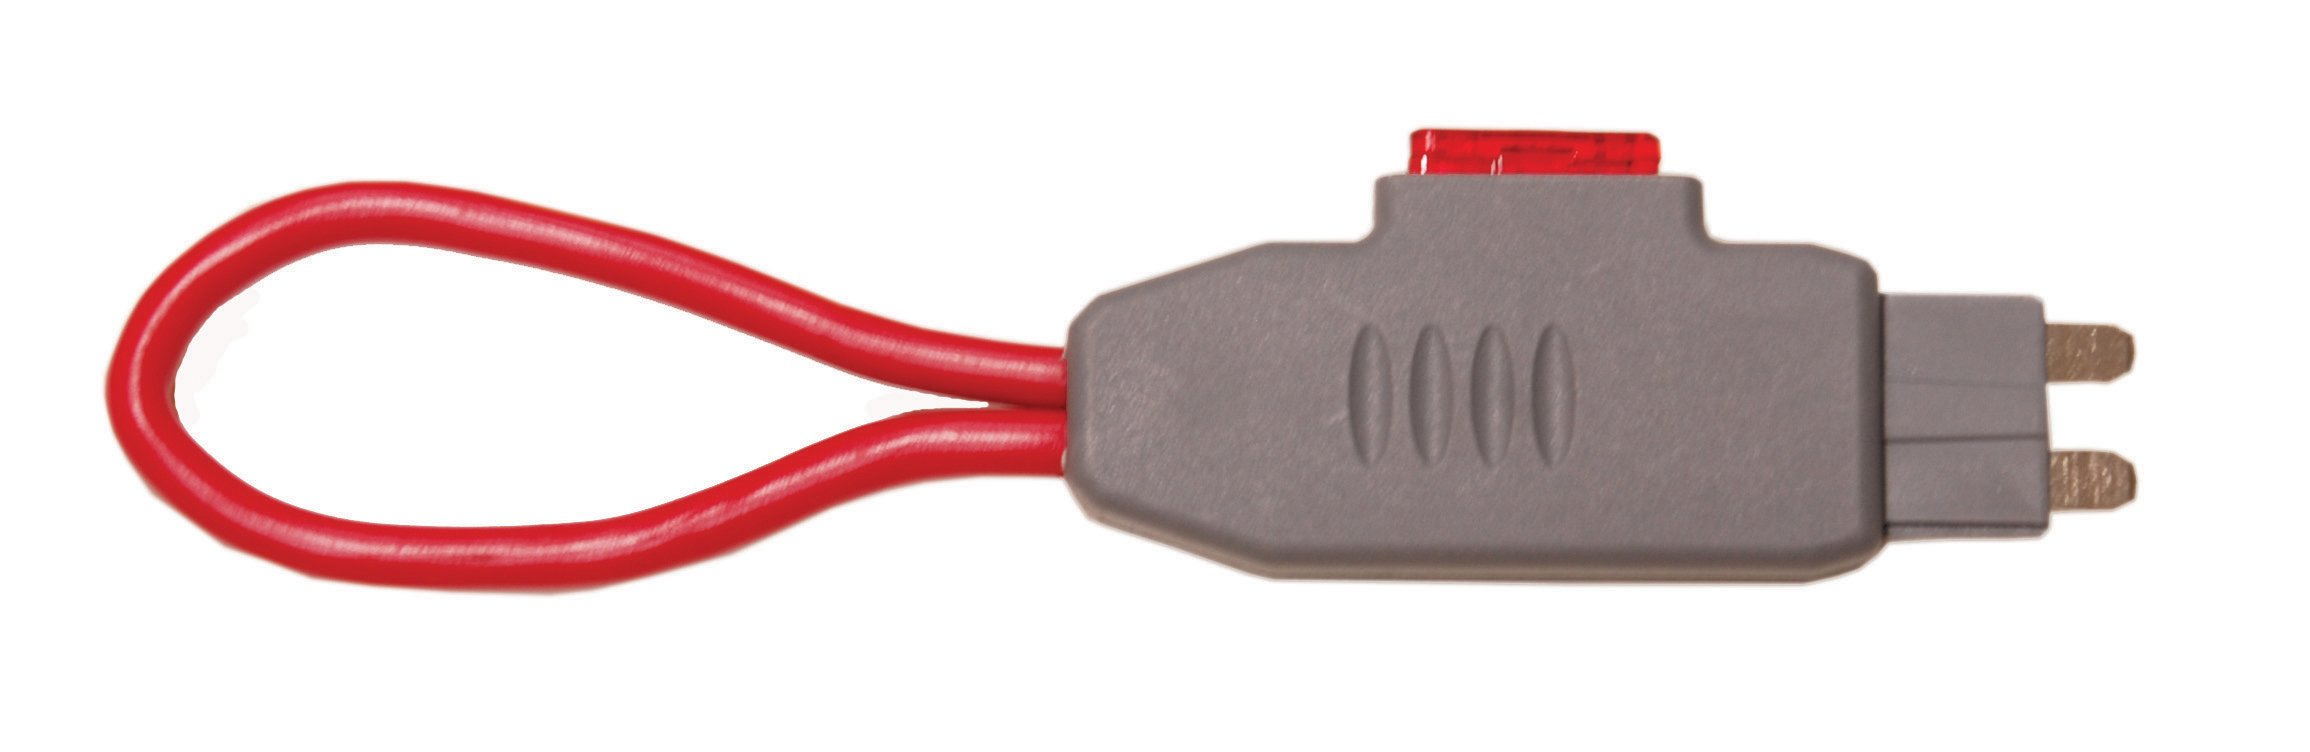 ESI 308B Fuse Buddy ATC Current Loop